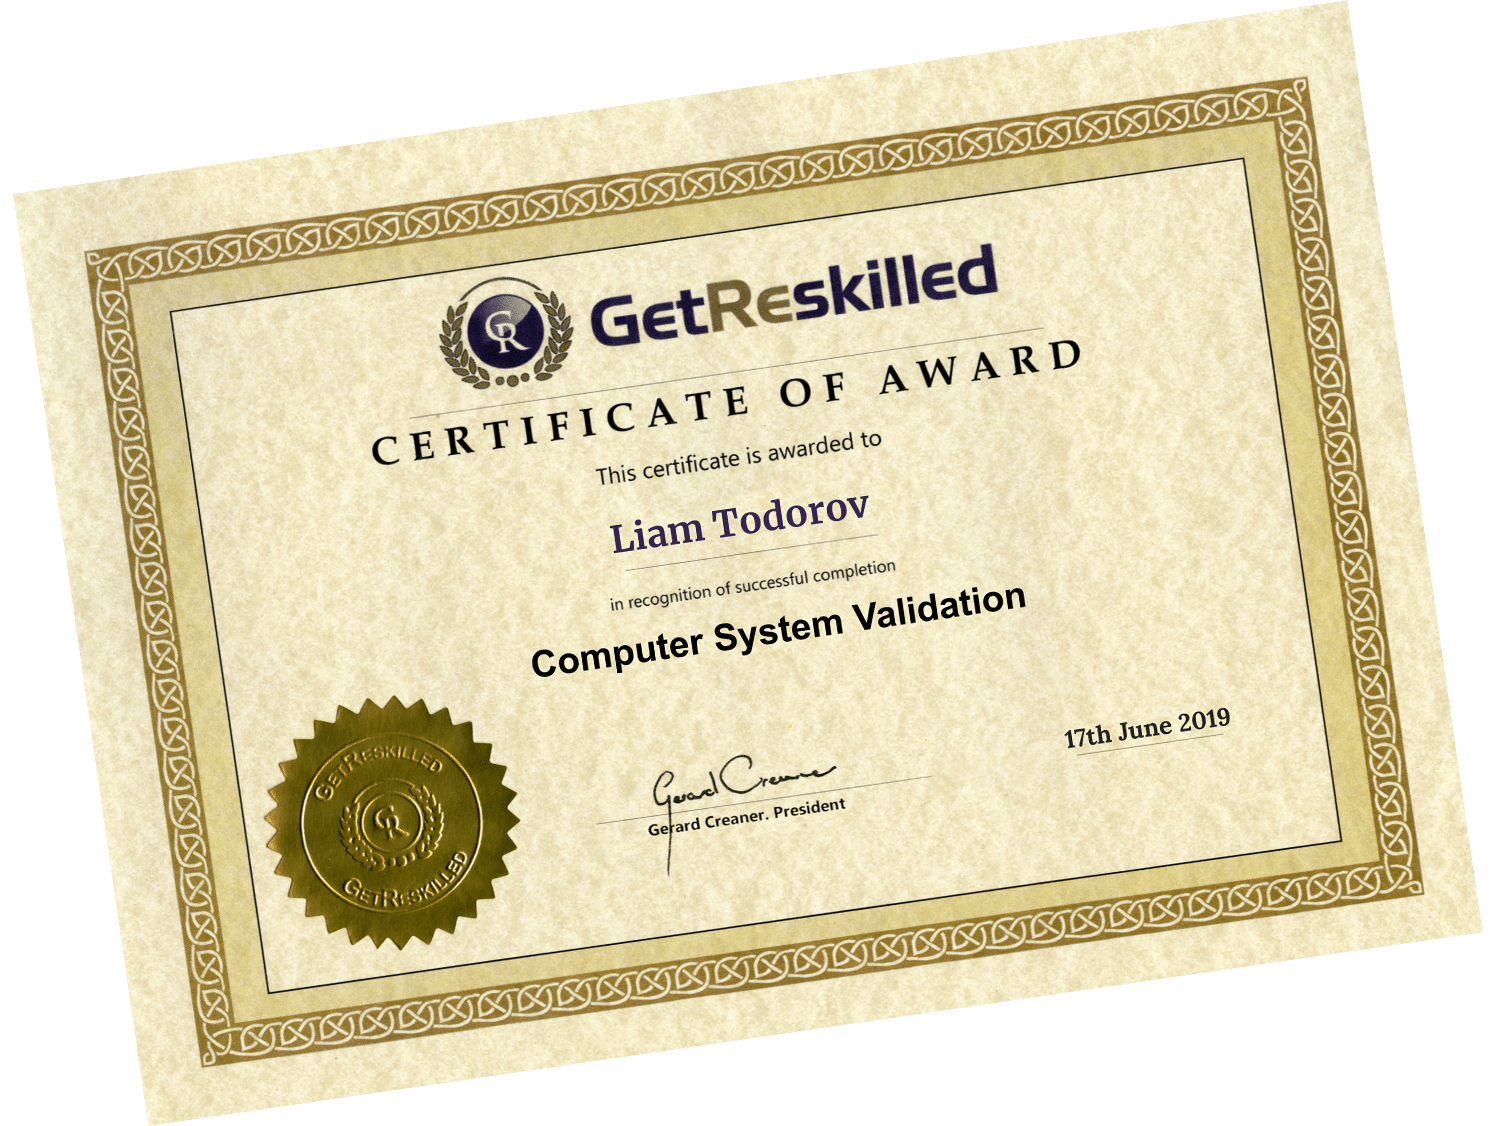 Computer System Validation Certificate